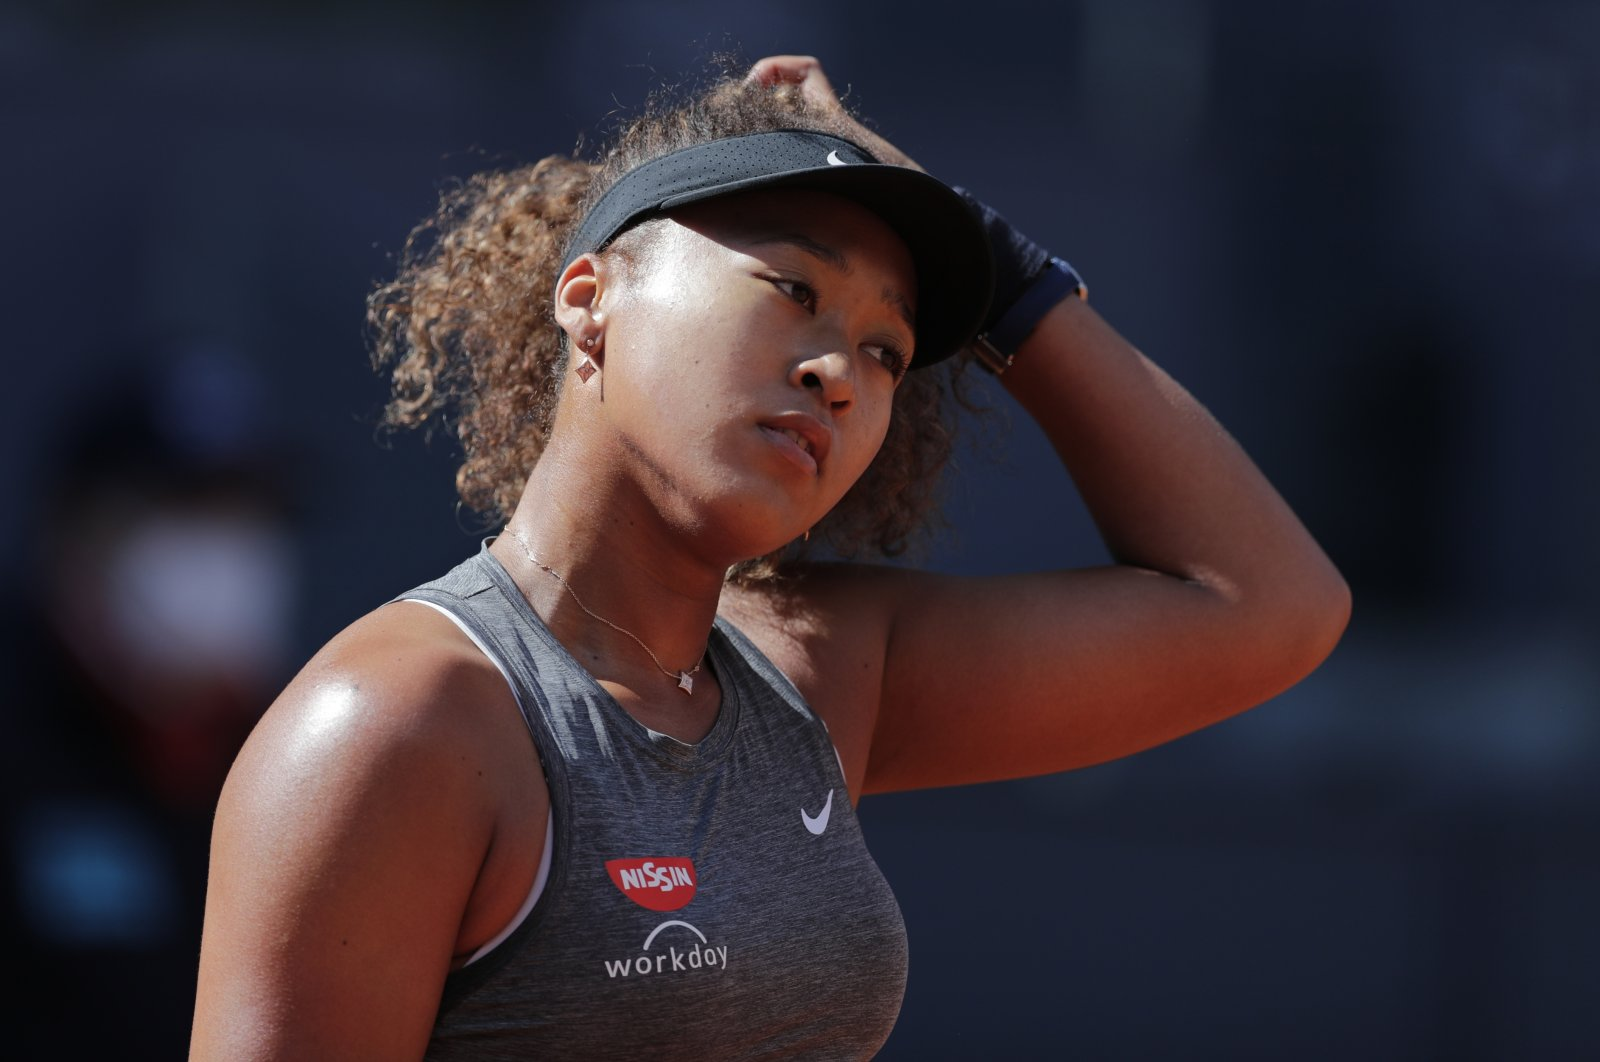 Japan's Naomi Osaka reacts during her match against the Czech Republic's Karolina Muchova at the Madrid Open, Madrid, Spain, May 2, 2021. (AP Photo)